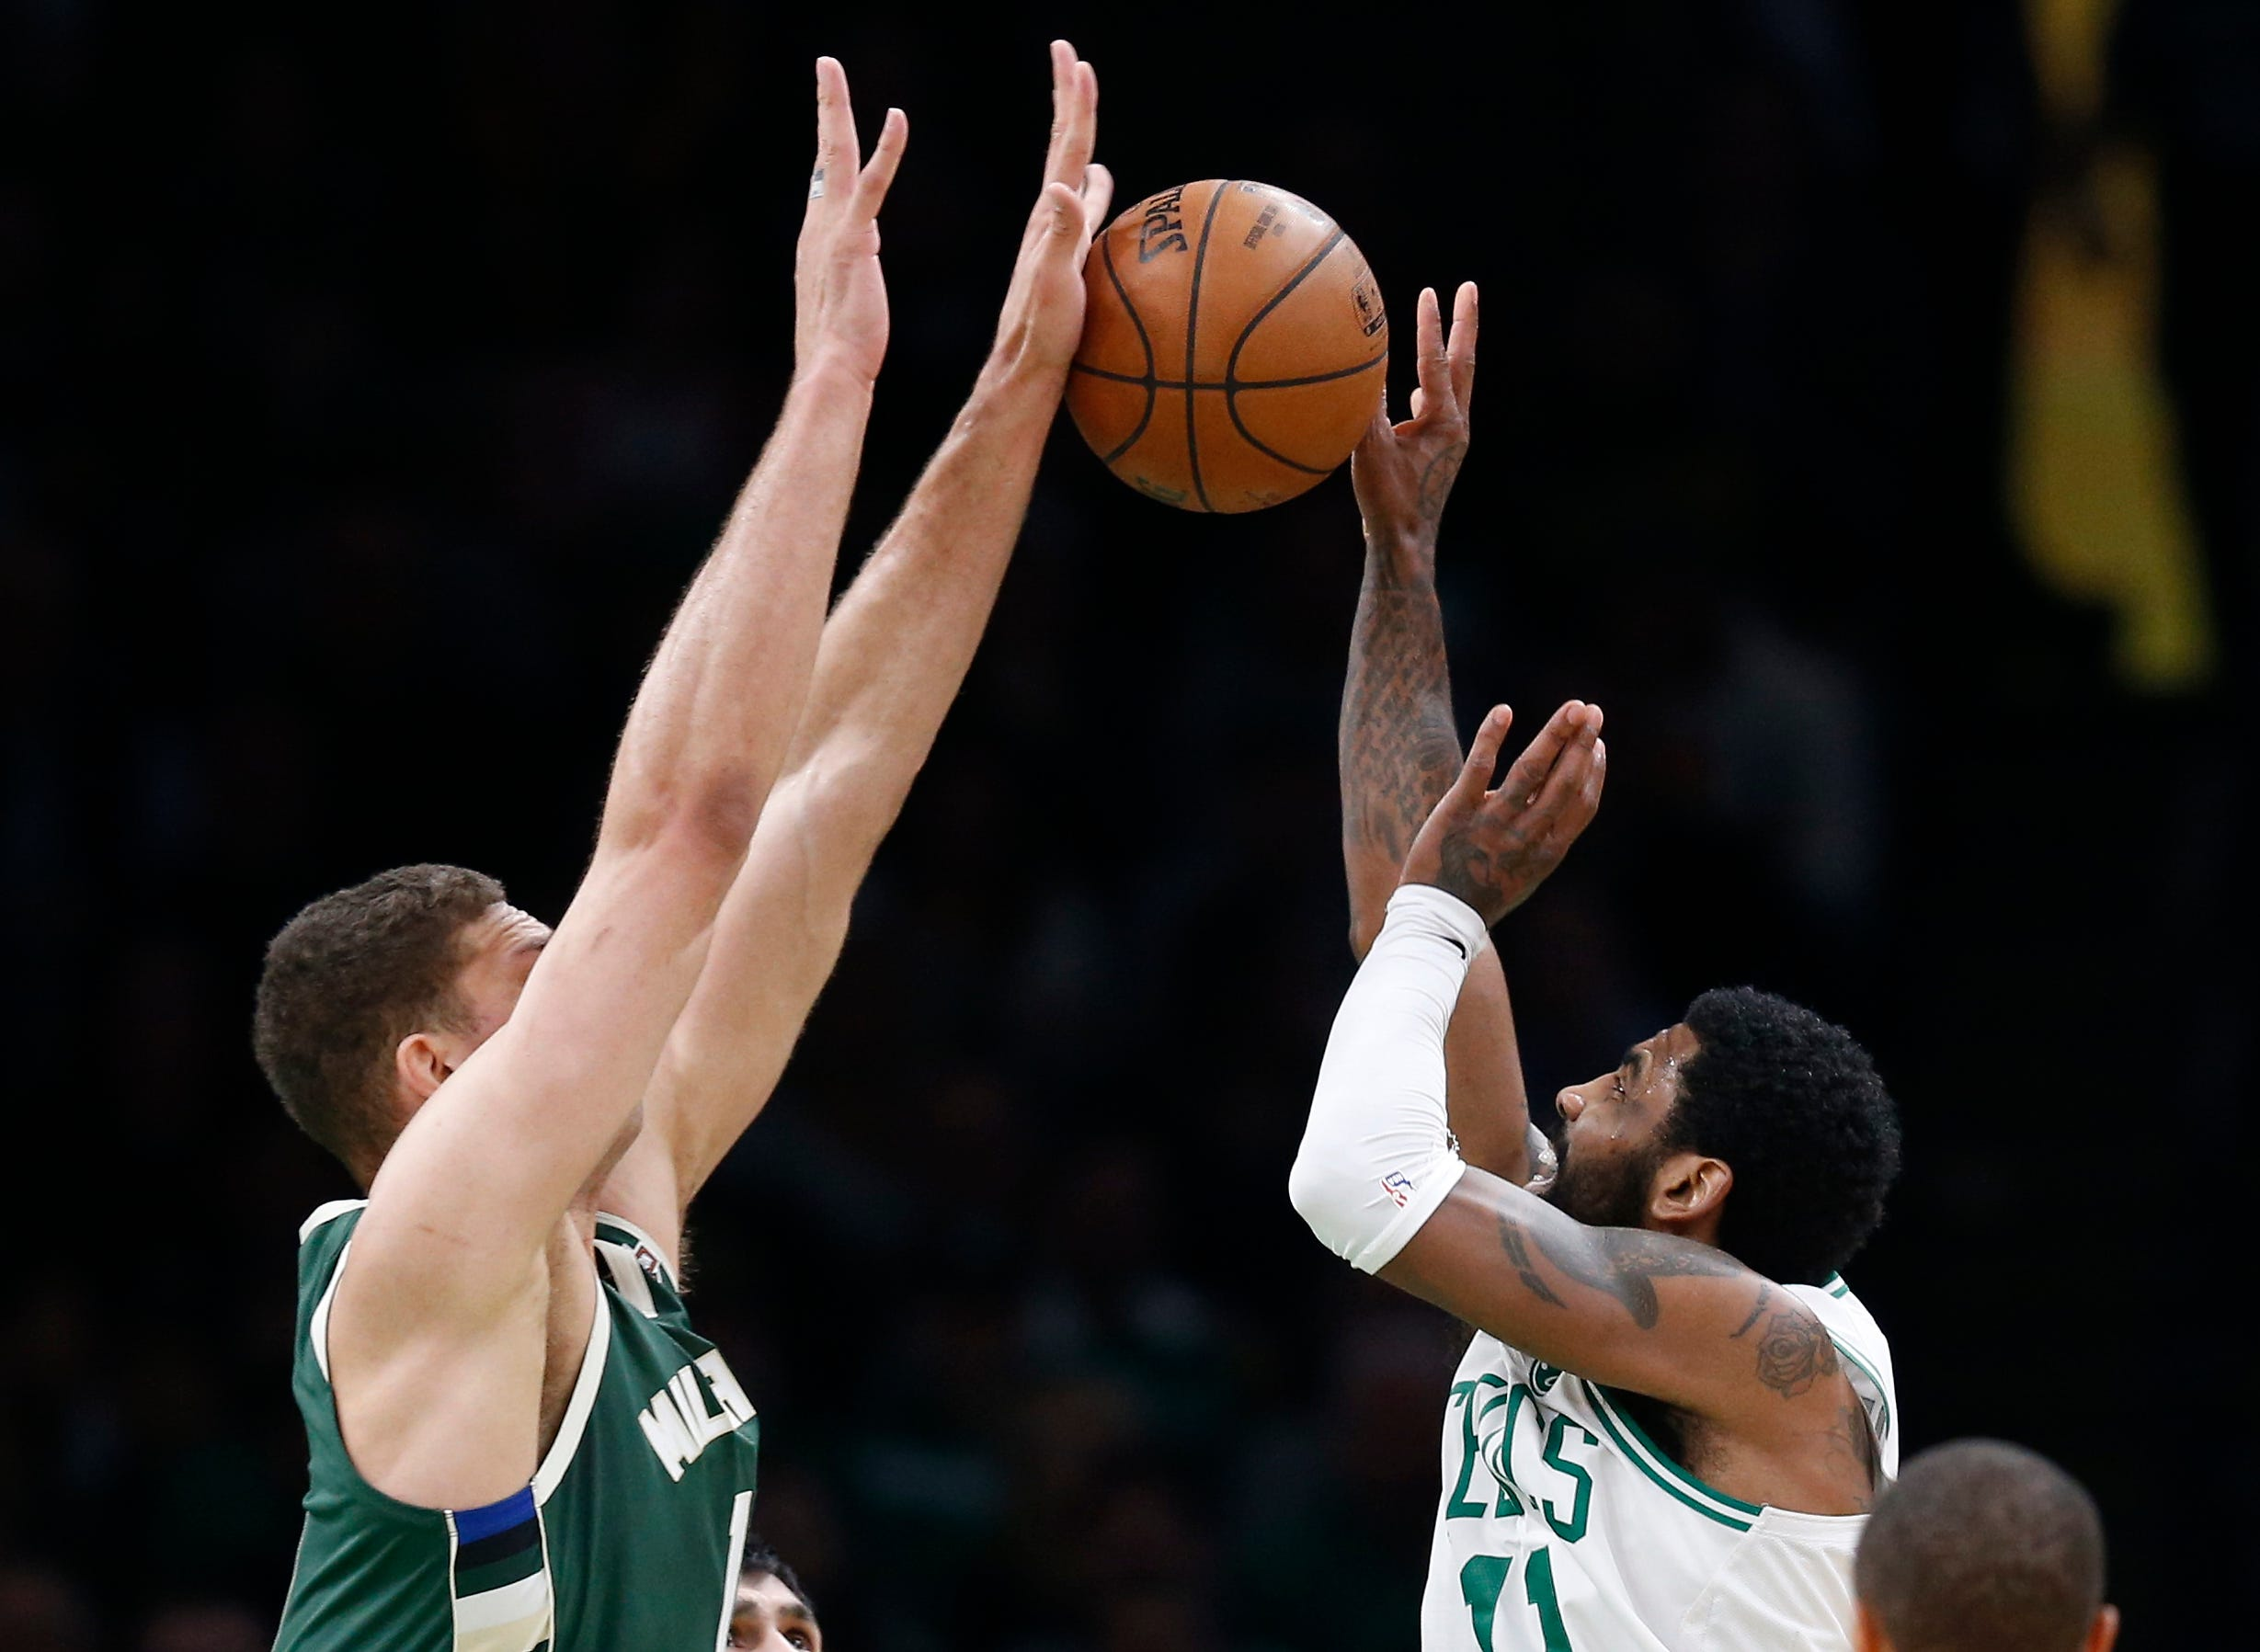 May 6: Bucks center Brook Lopez (11) blocks a shot attempt by Celtics guard Kyrie Irving (11) during Game 4.